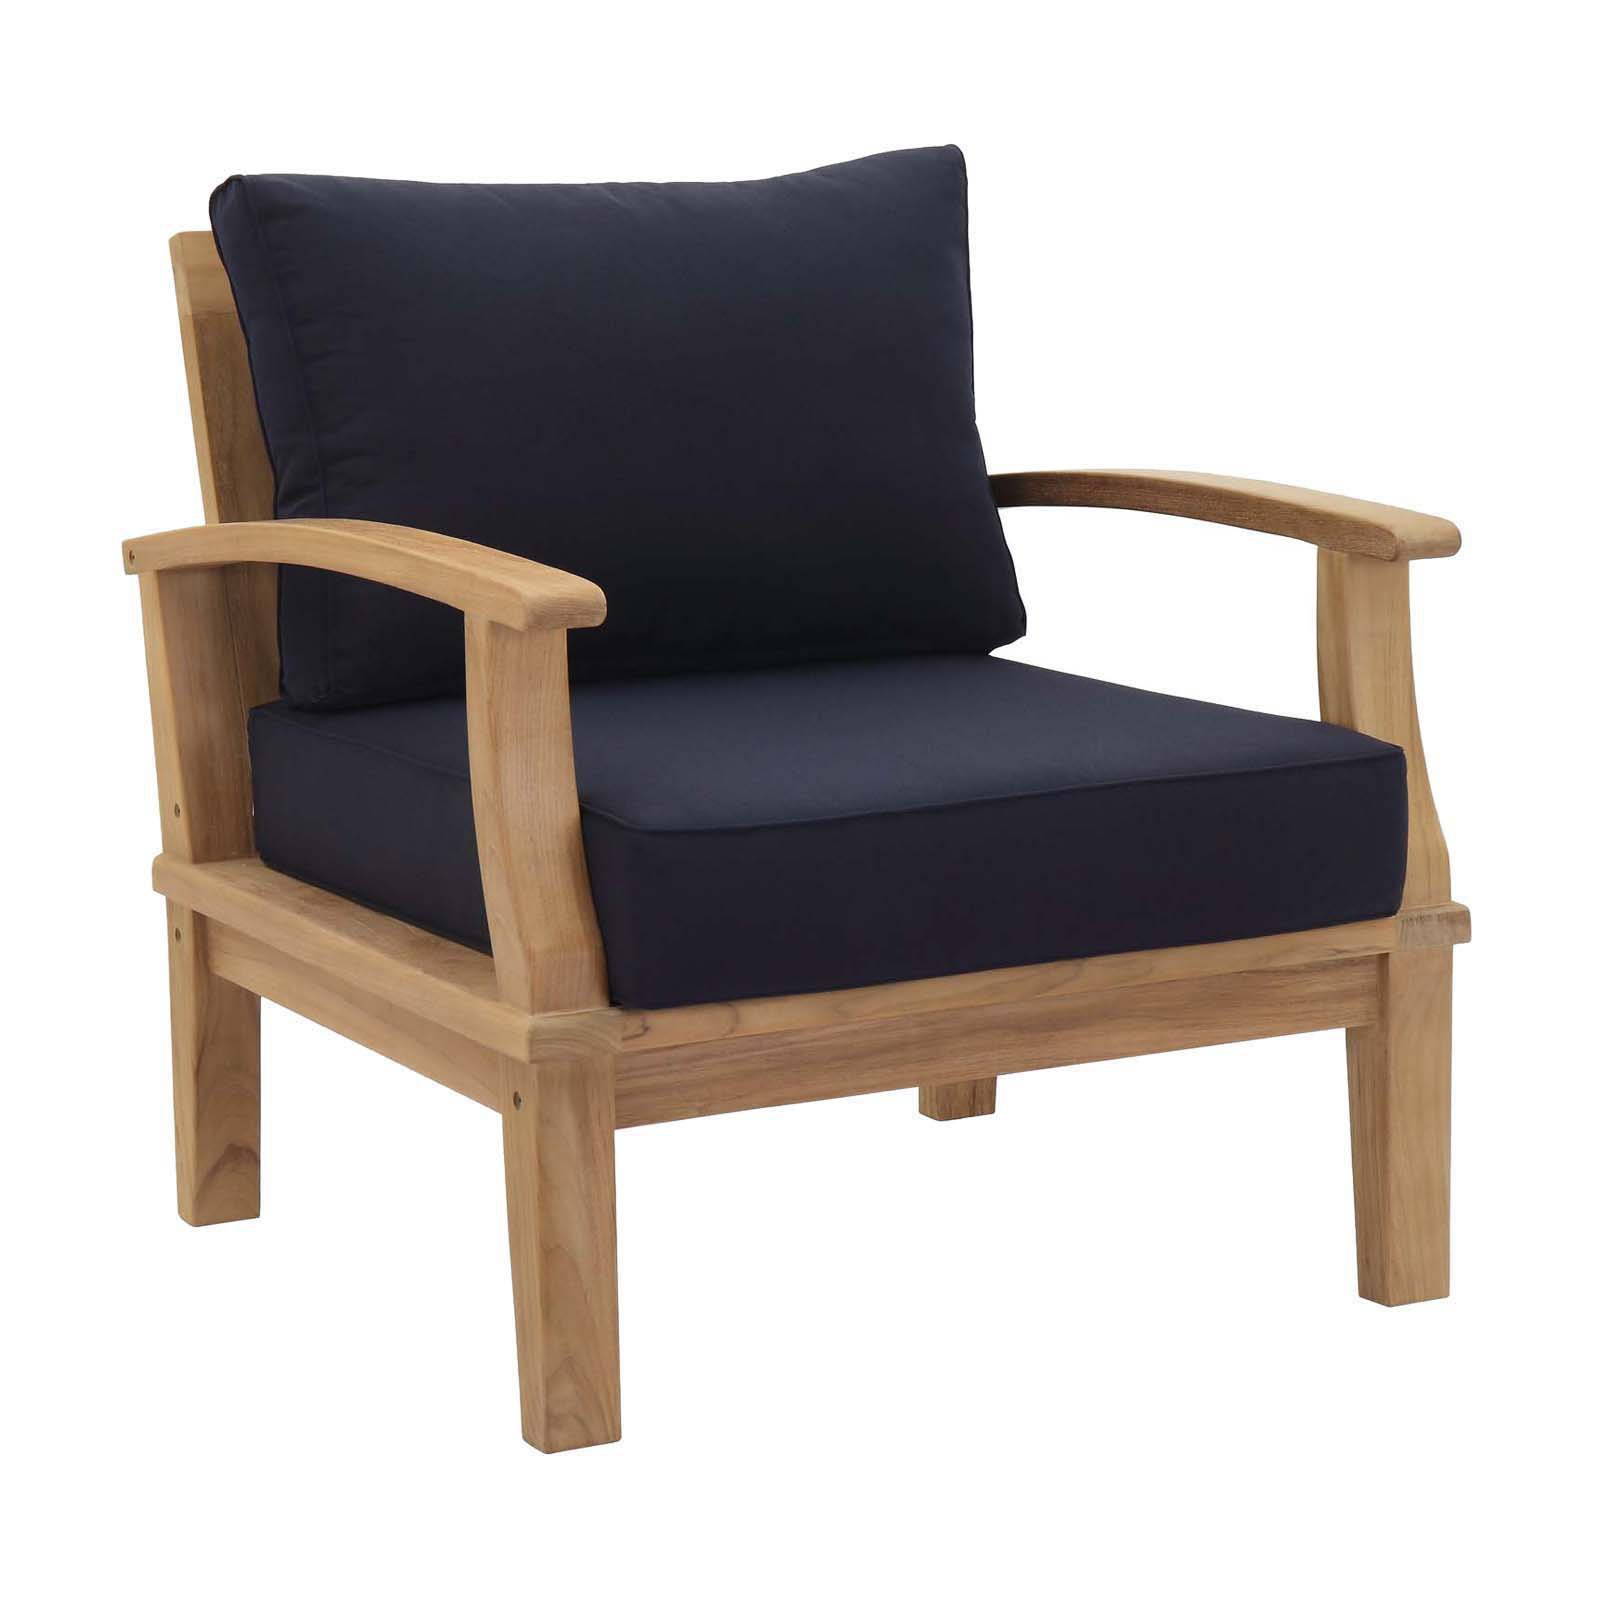 Modway Marina Outdoor Patio Teak Armchair in Natural White